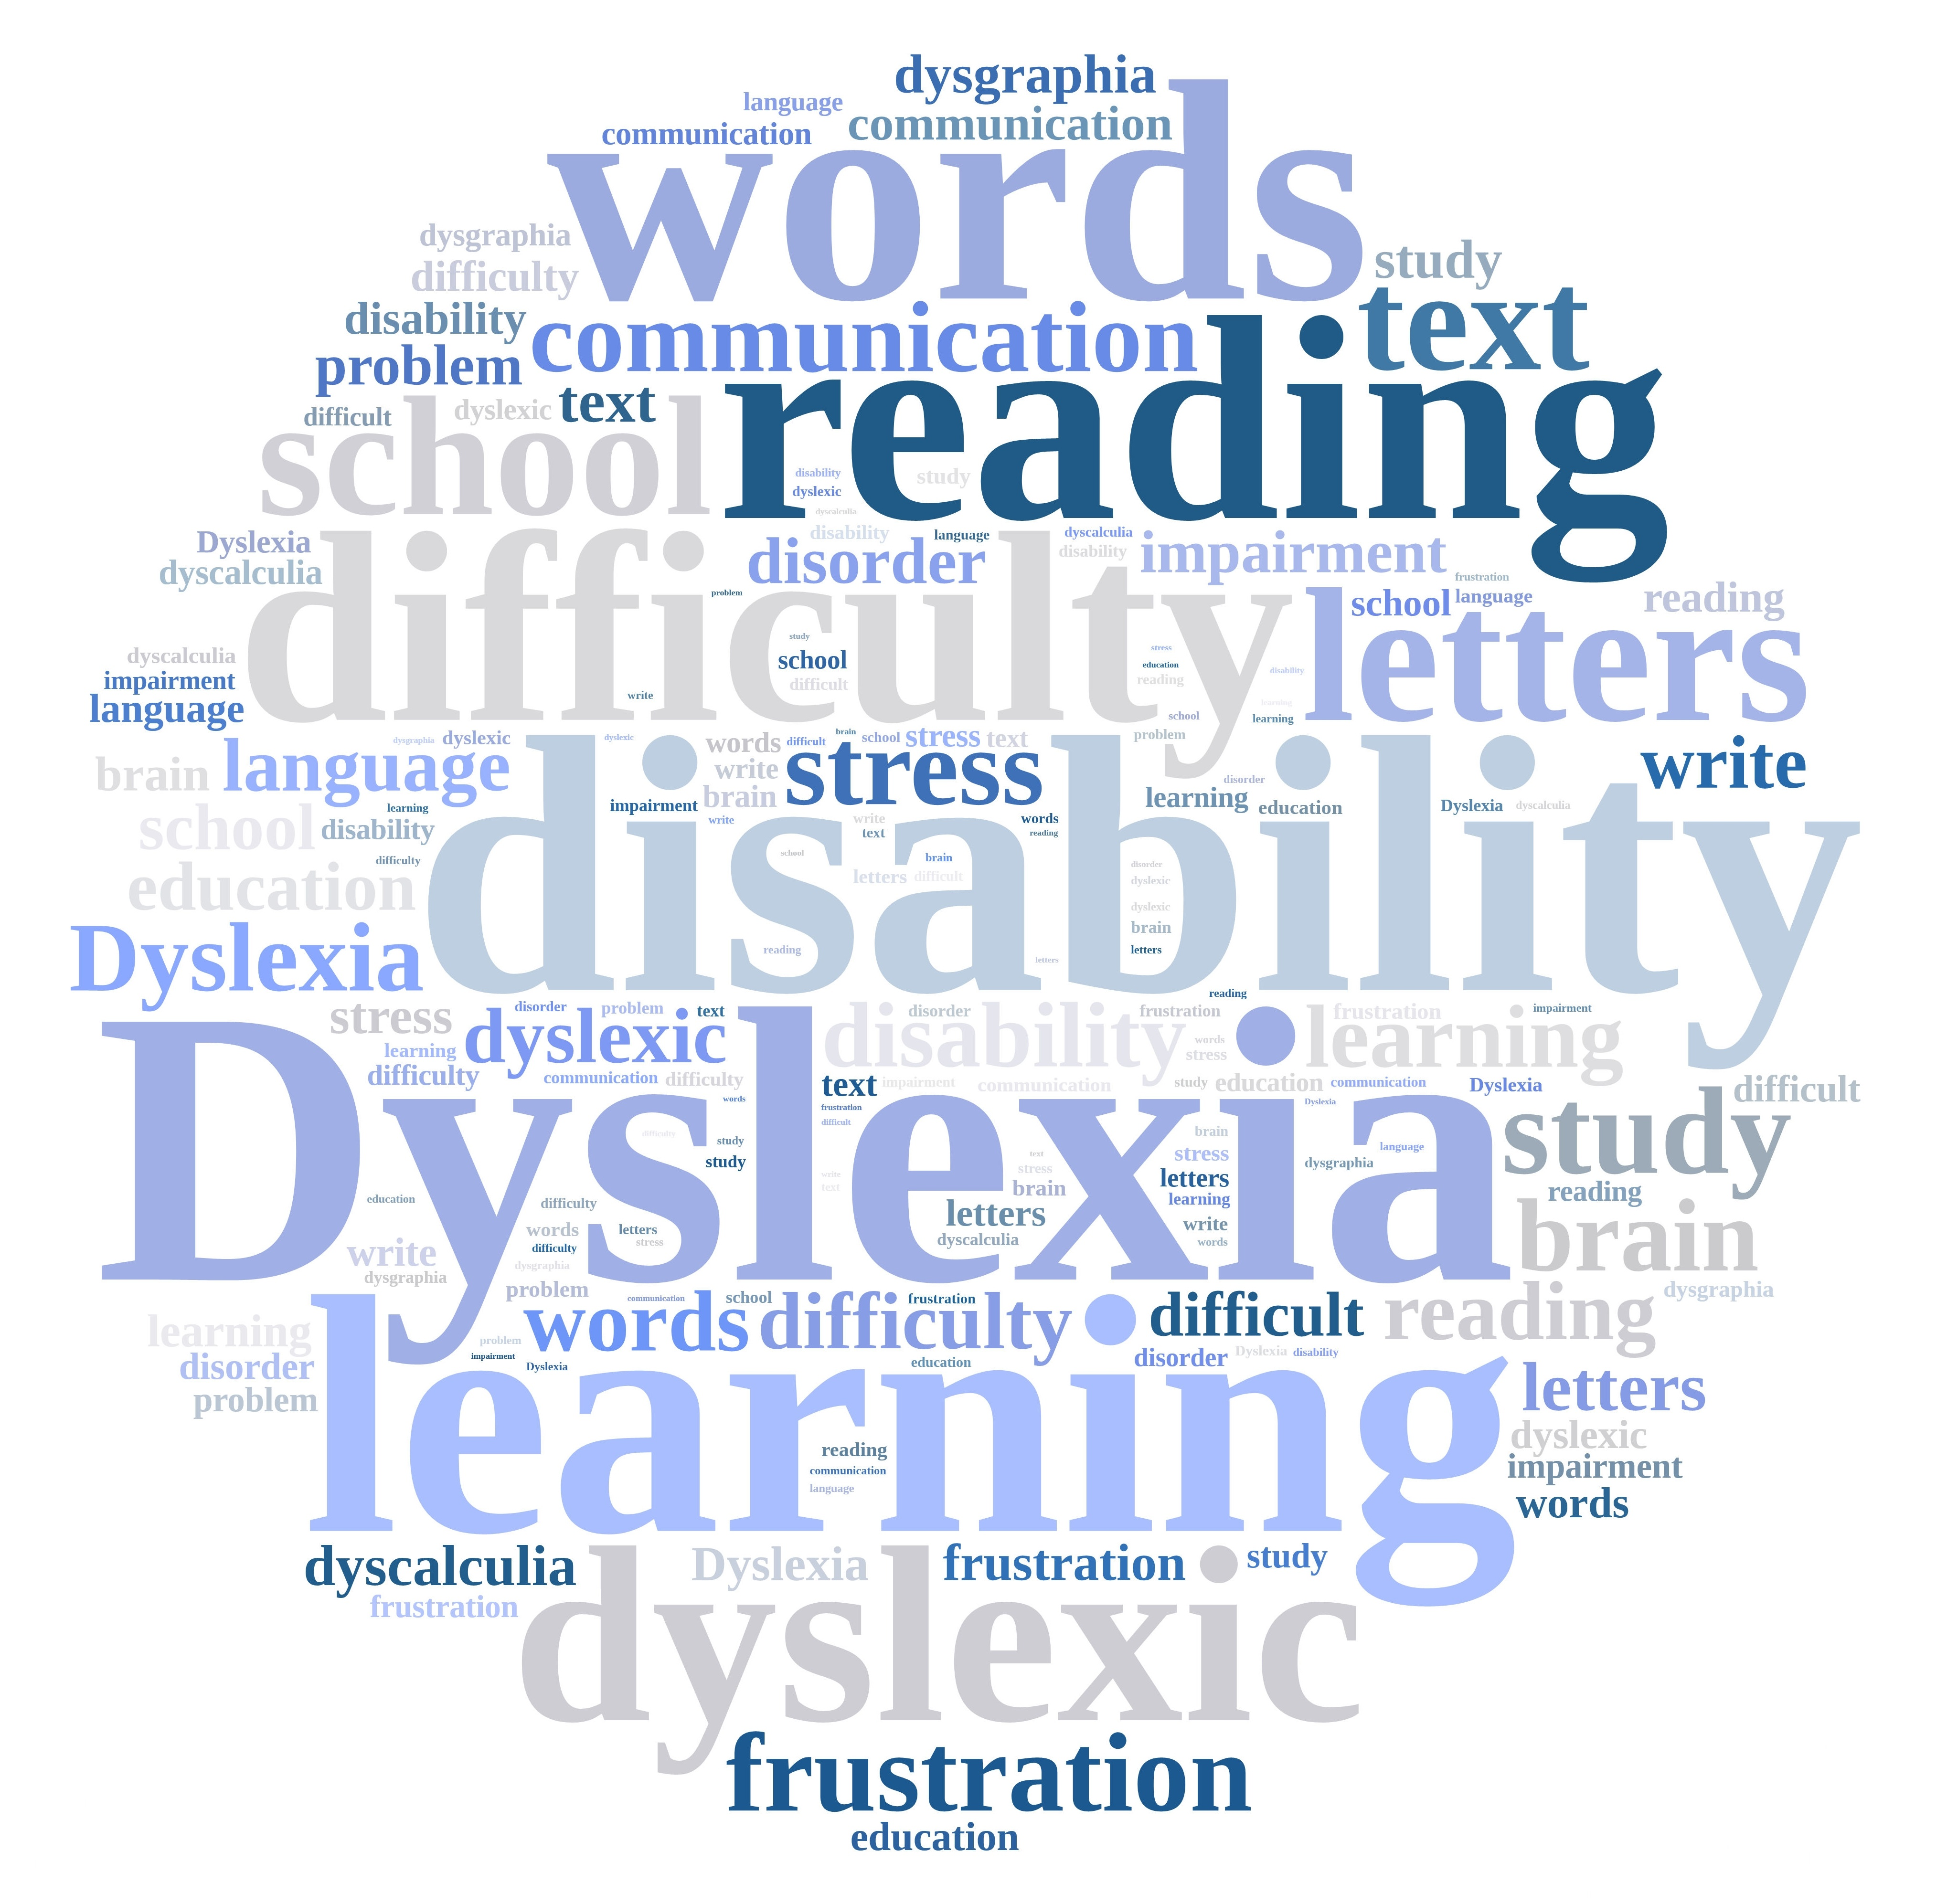 text 'dyslexia' 'words' 'learning' 'difficulty' 'disability' arranged into a circle